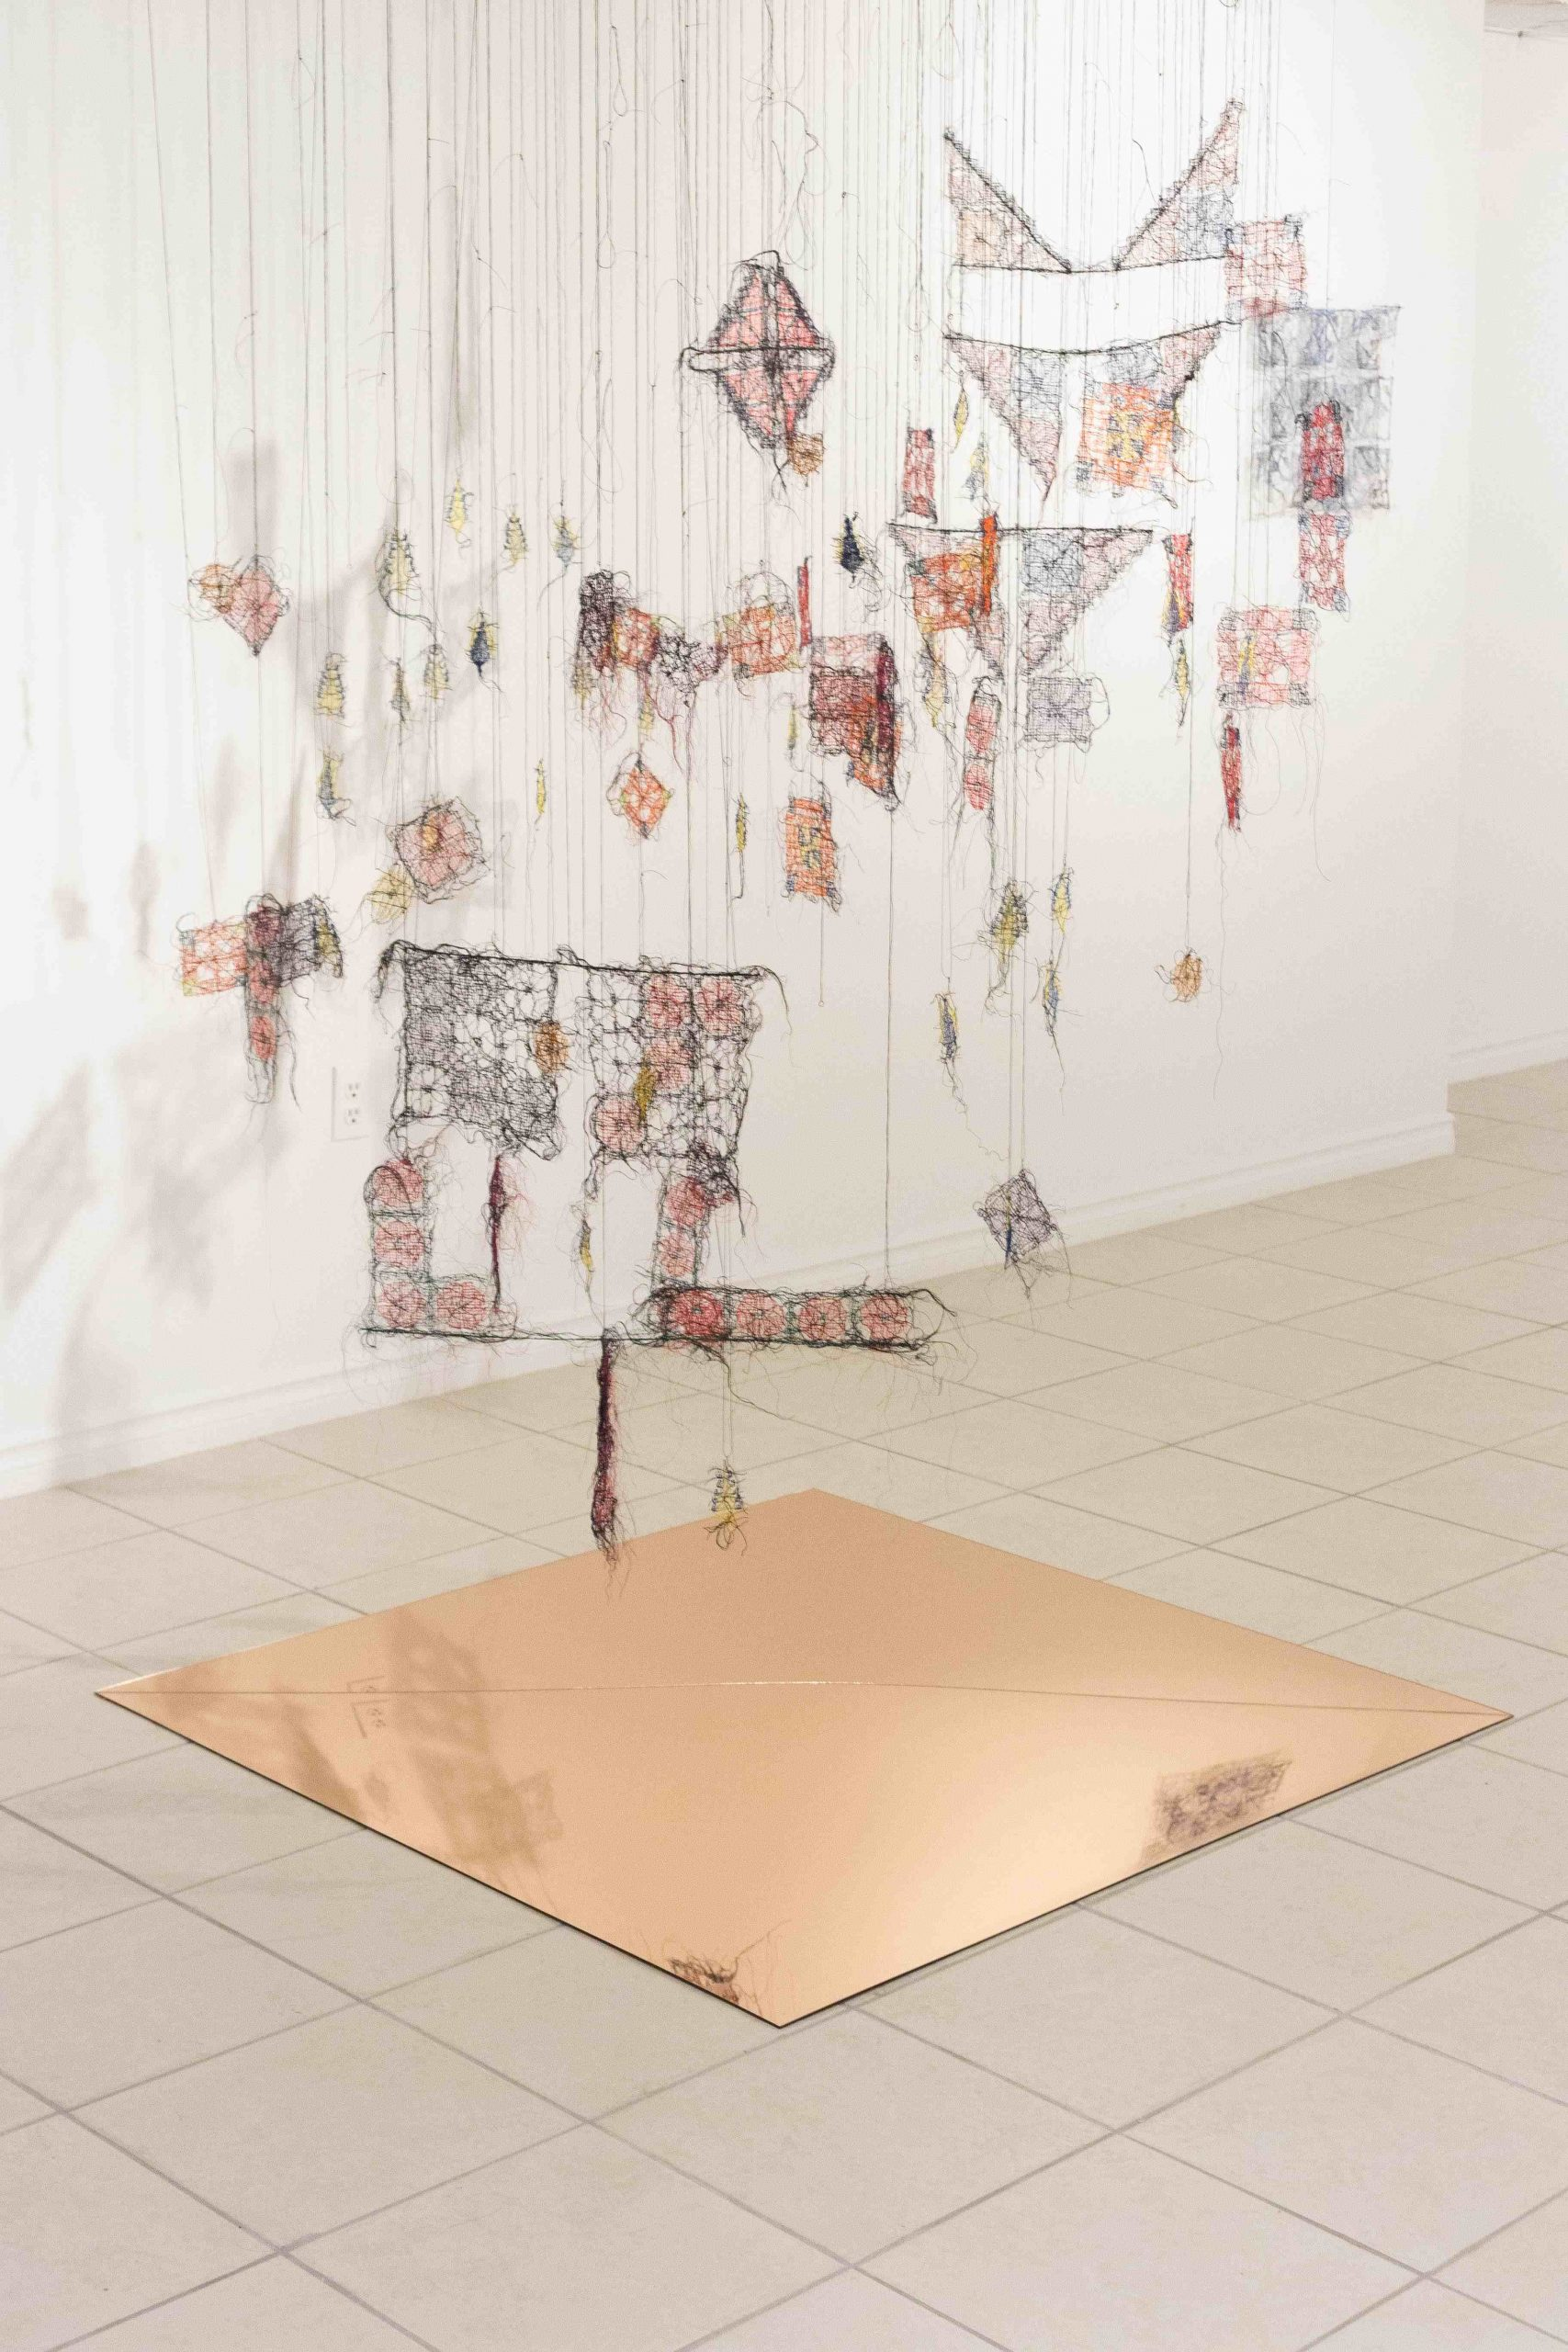 Transgressed Boundaries Installation, 2020, thread, mirrored plexiglass, 1.5 x 1.5 x 2.5 cm